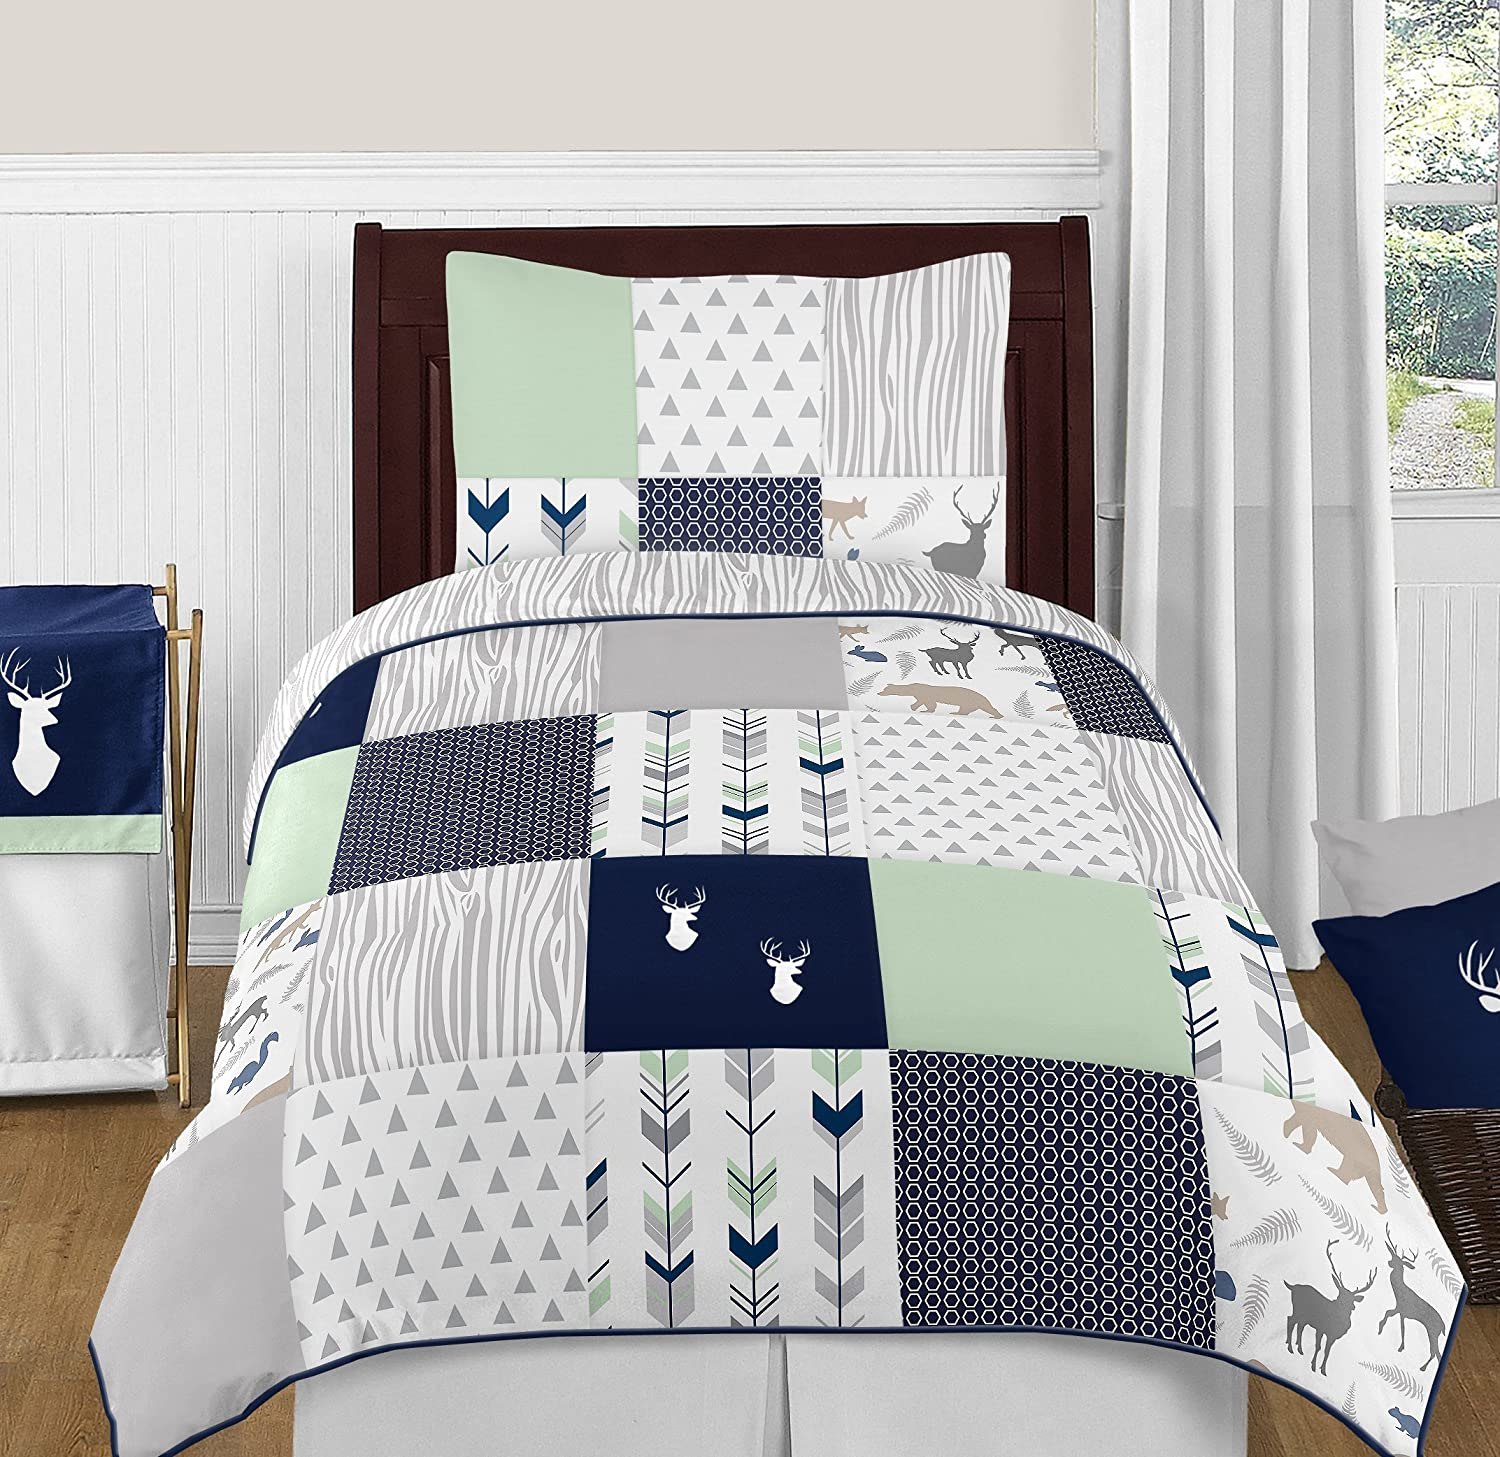 Best Beautiful Boys Bedding Sets Ease Bedding With Style